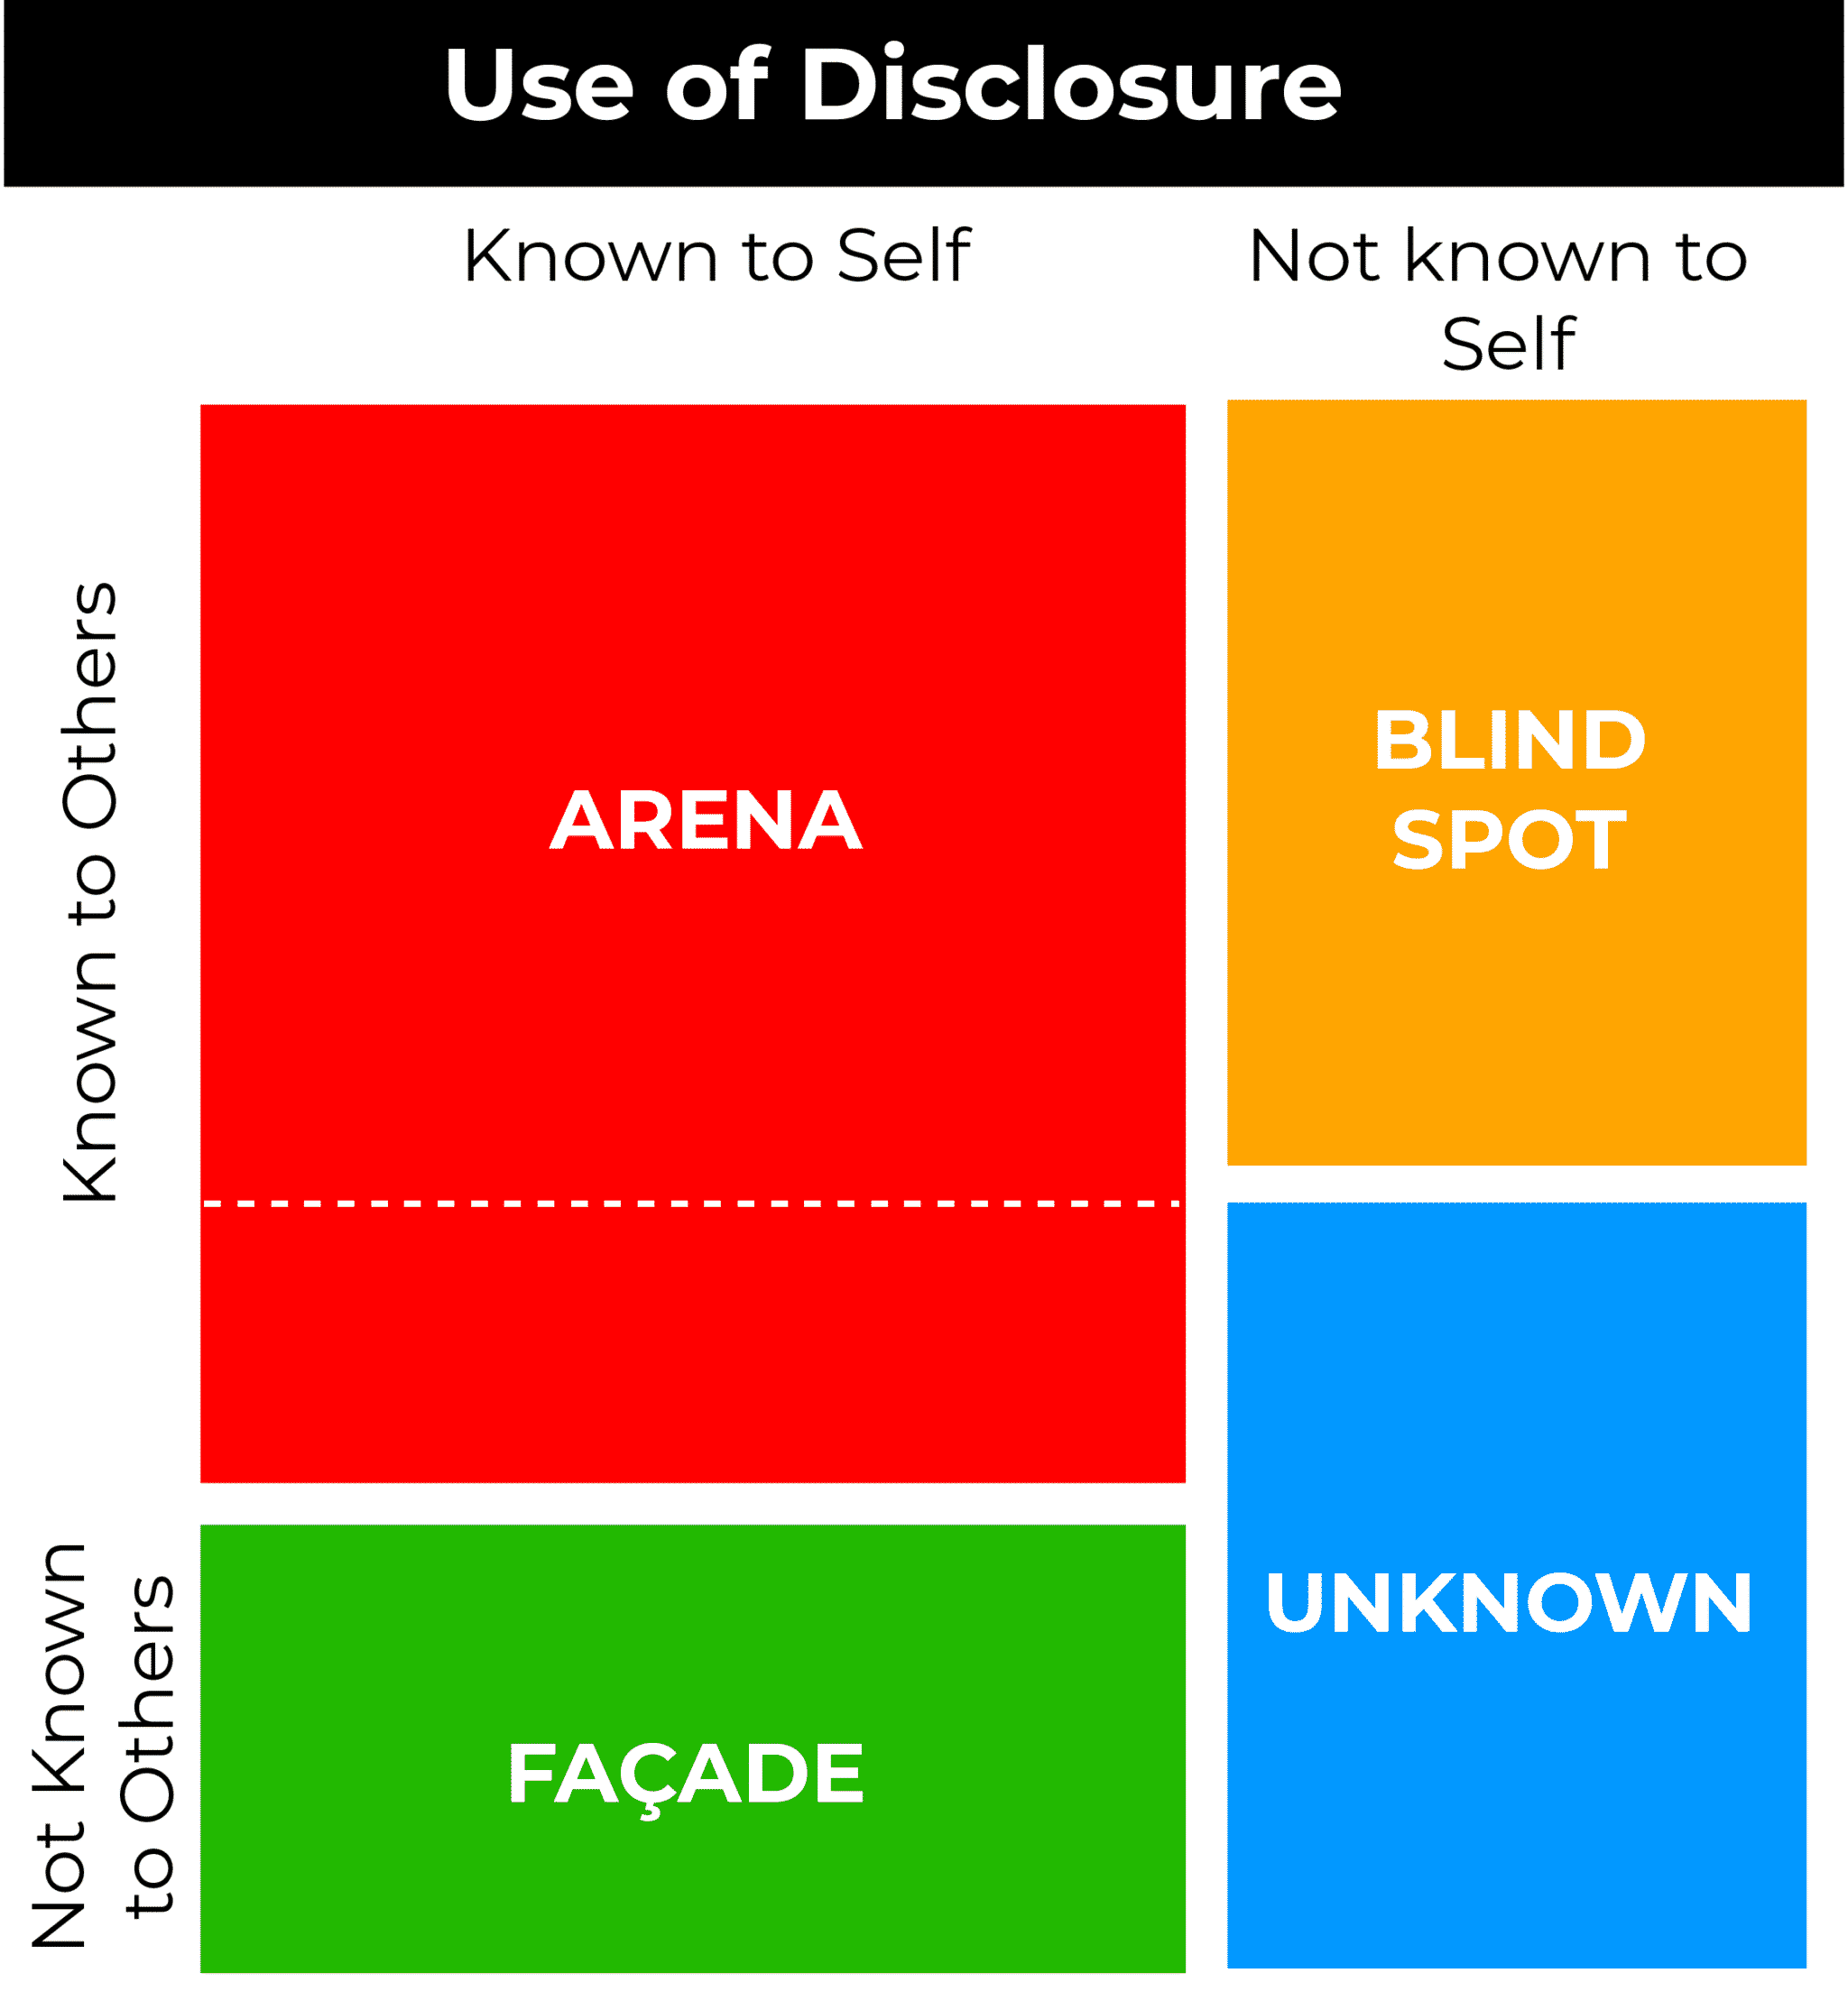 USE OF DISCLOSURE